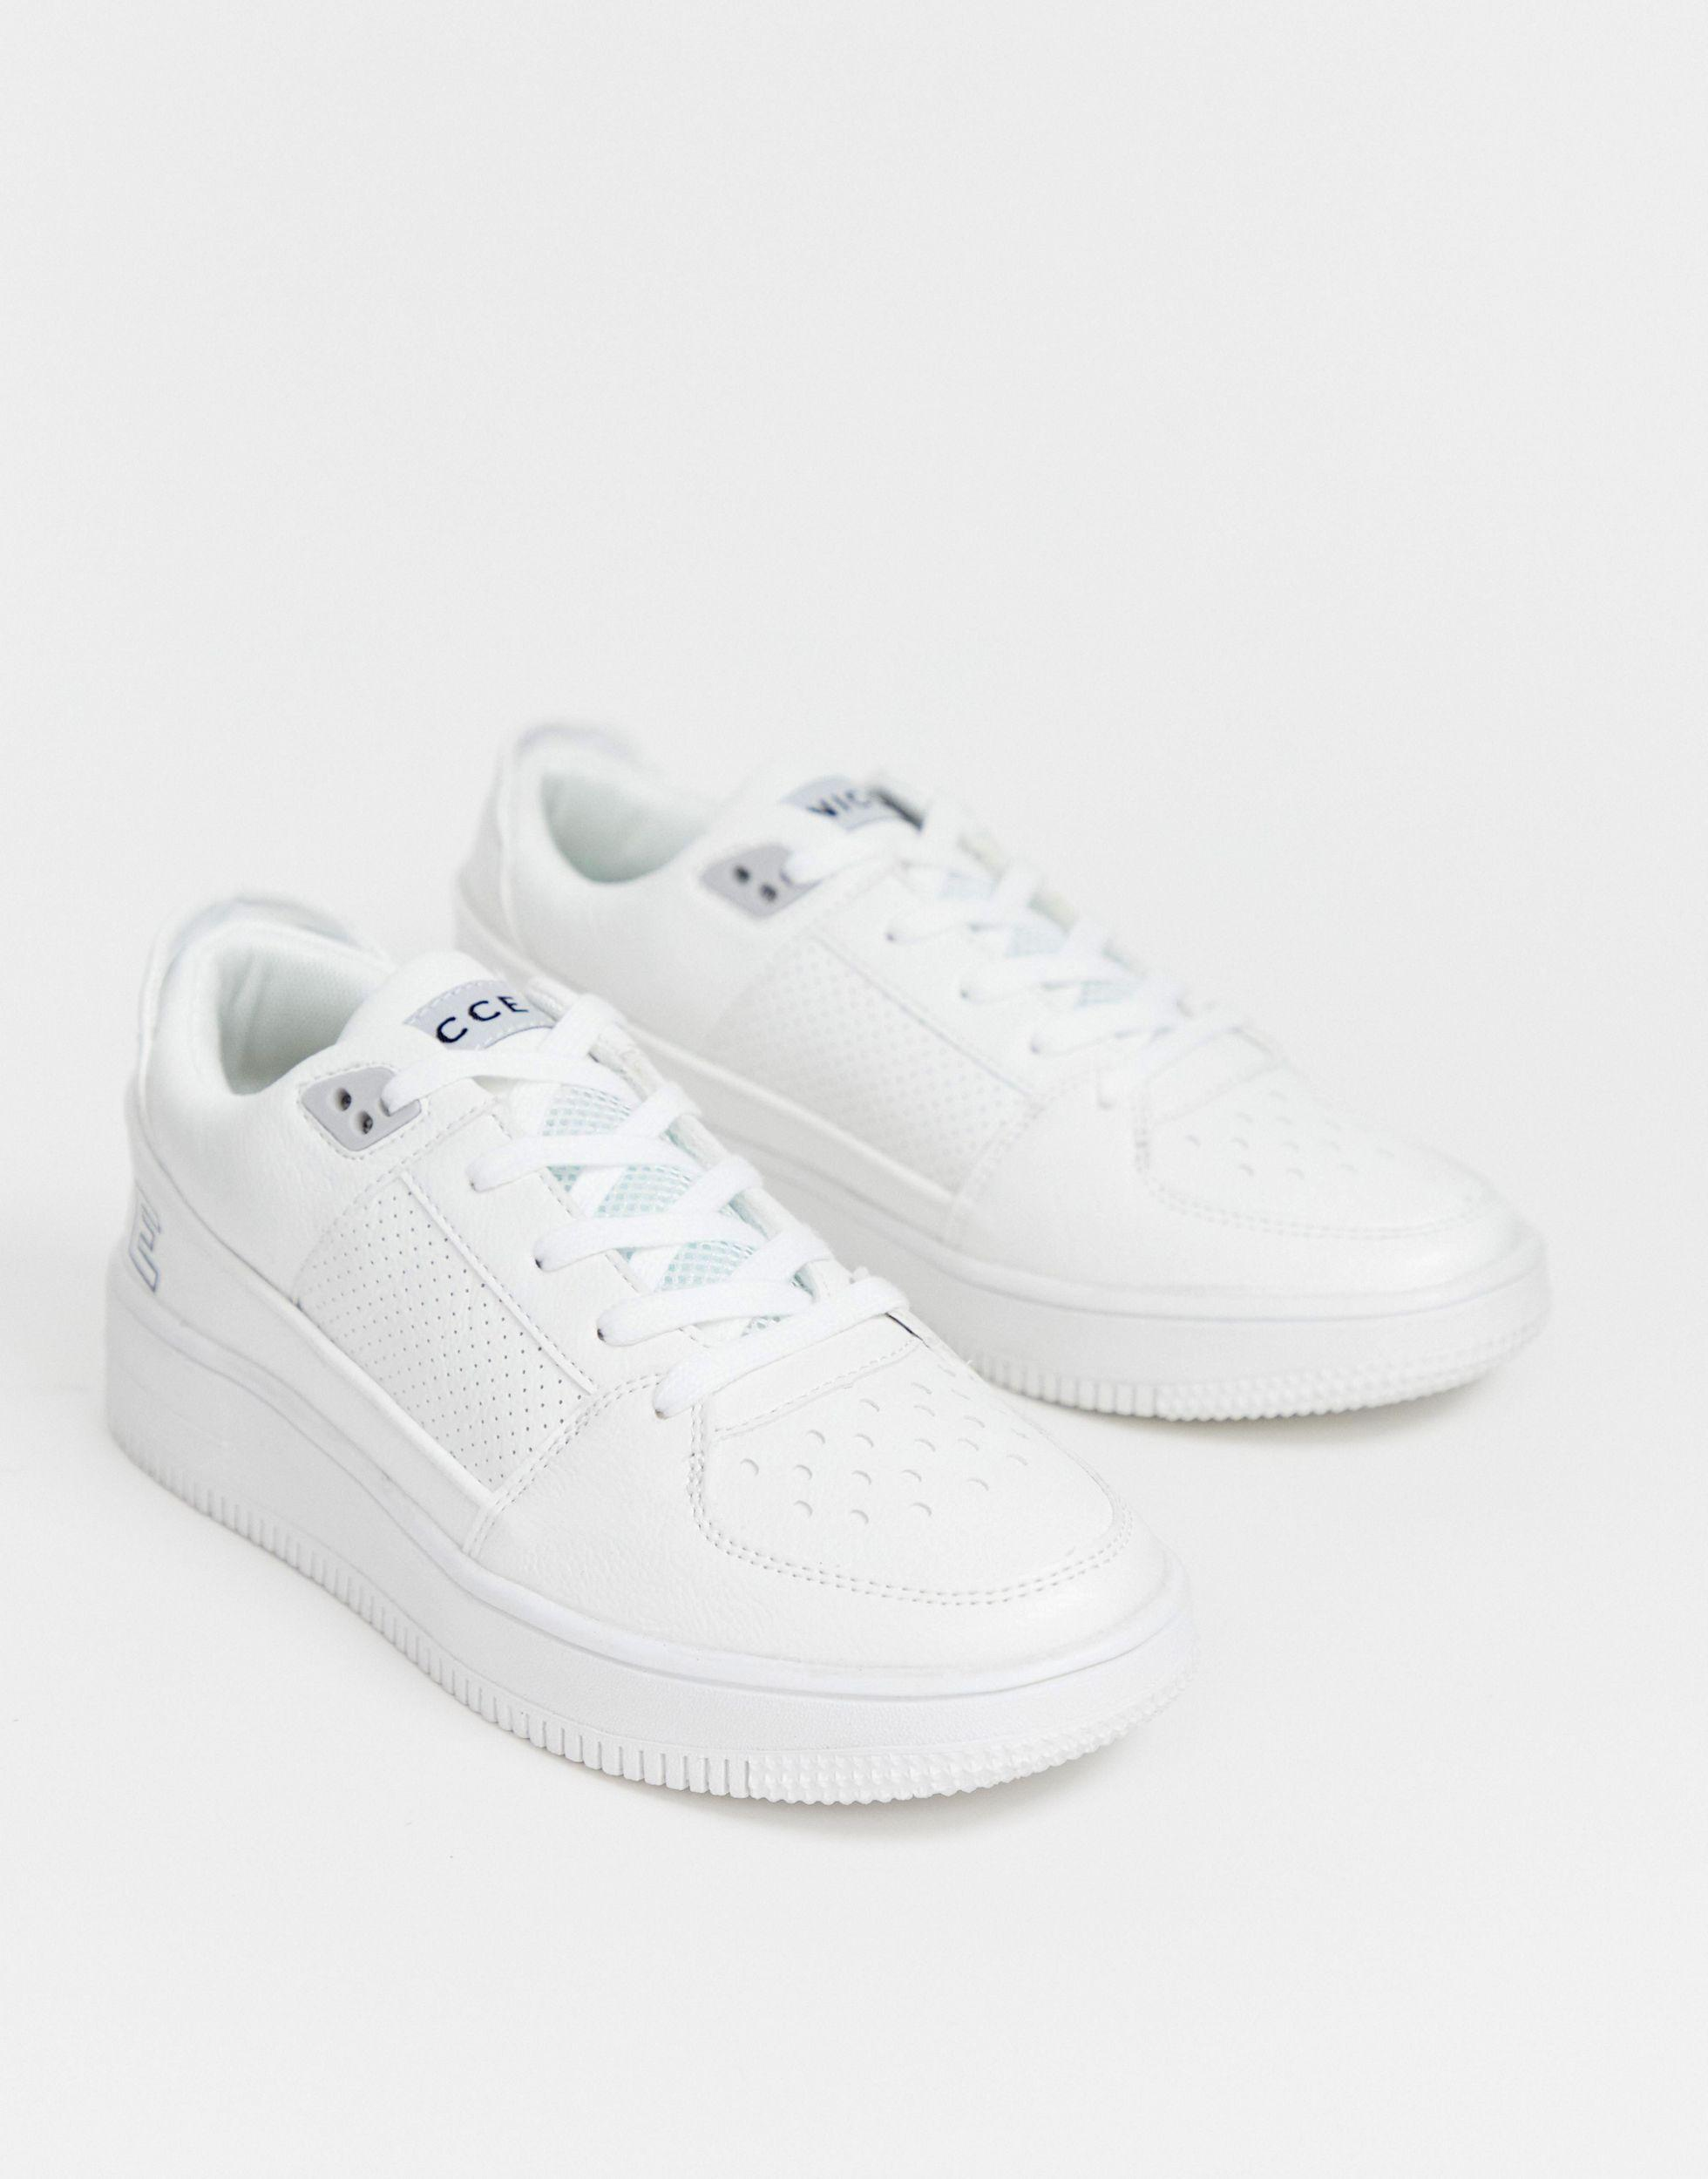 Nicce London Leather Kendrick Trainer